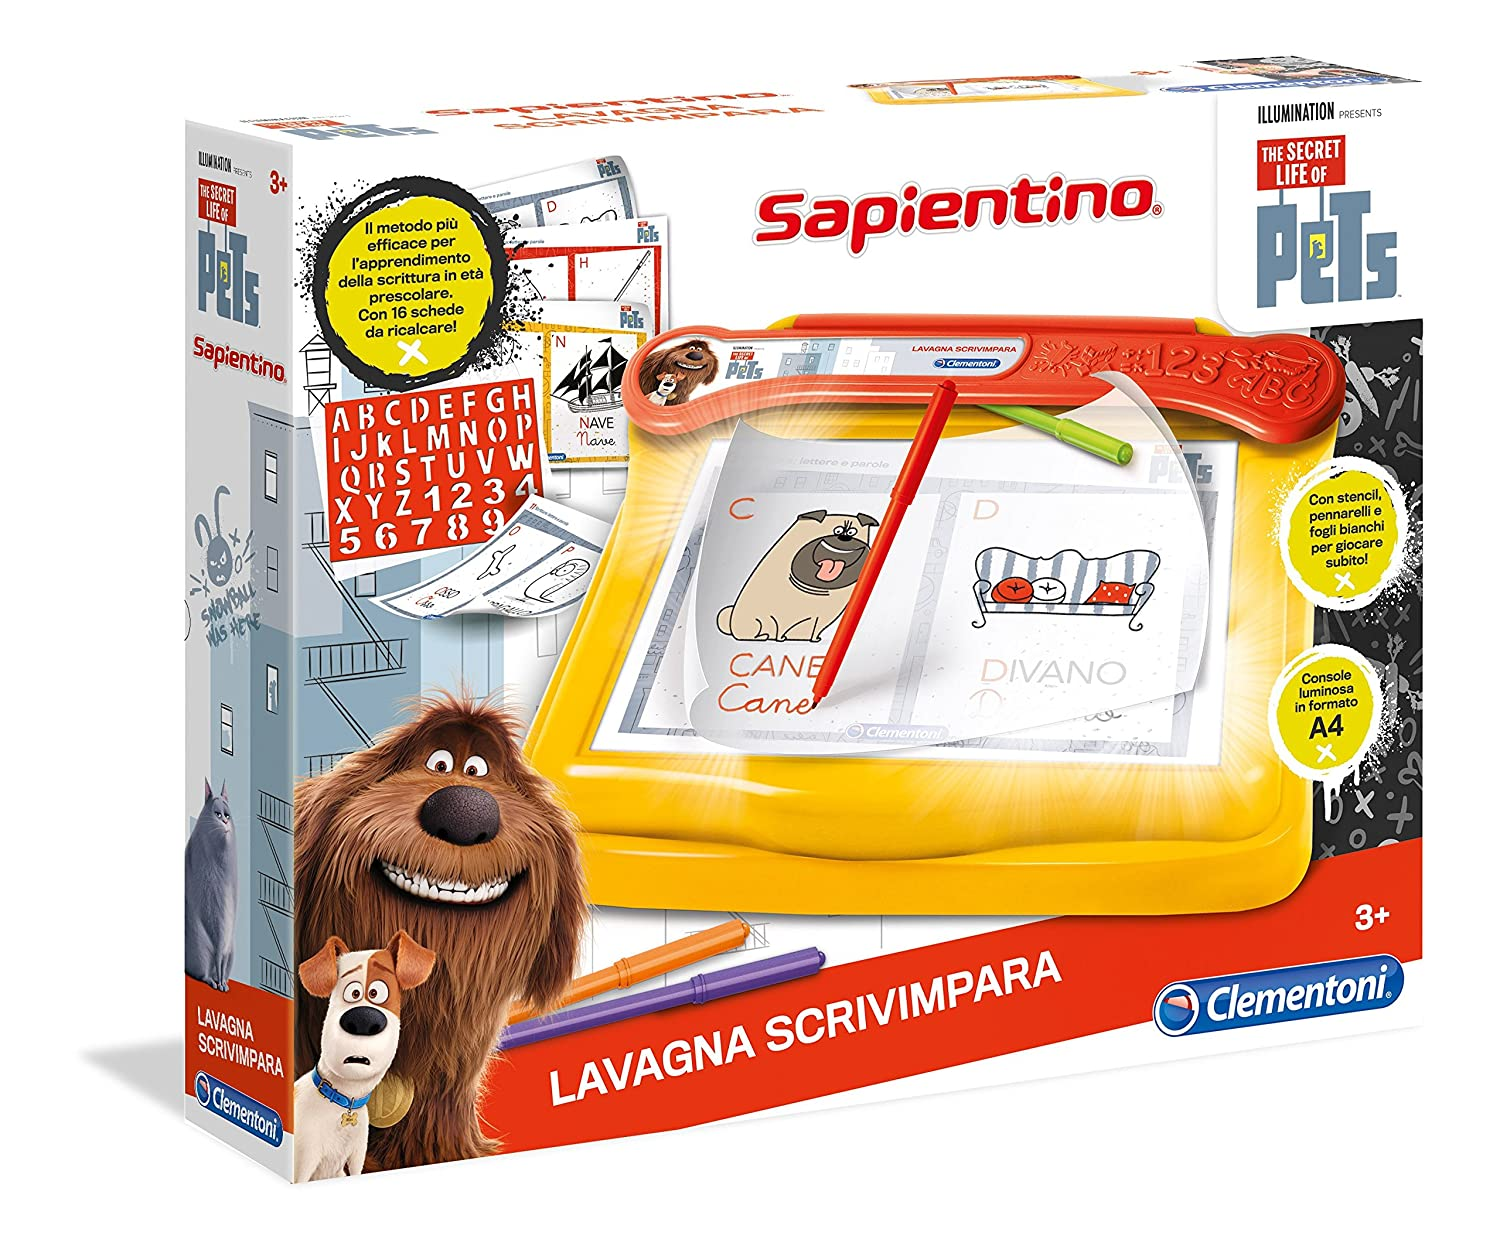 Favoloso Clementoni 12029 - Lavagna Scrivimpara: Amazon.it: Giochi e giocattoli TX85